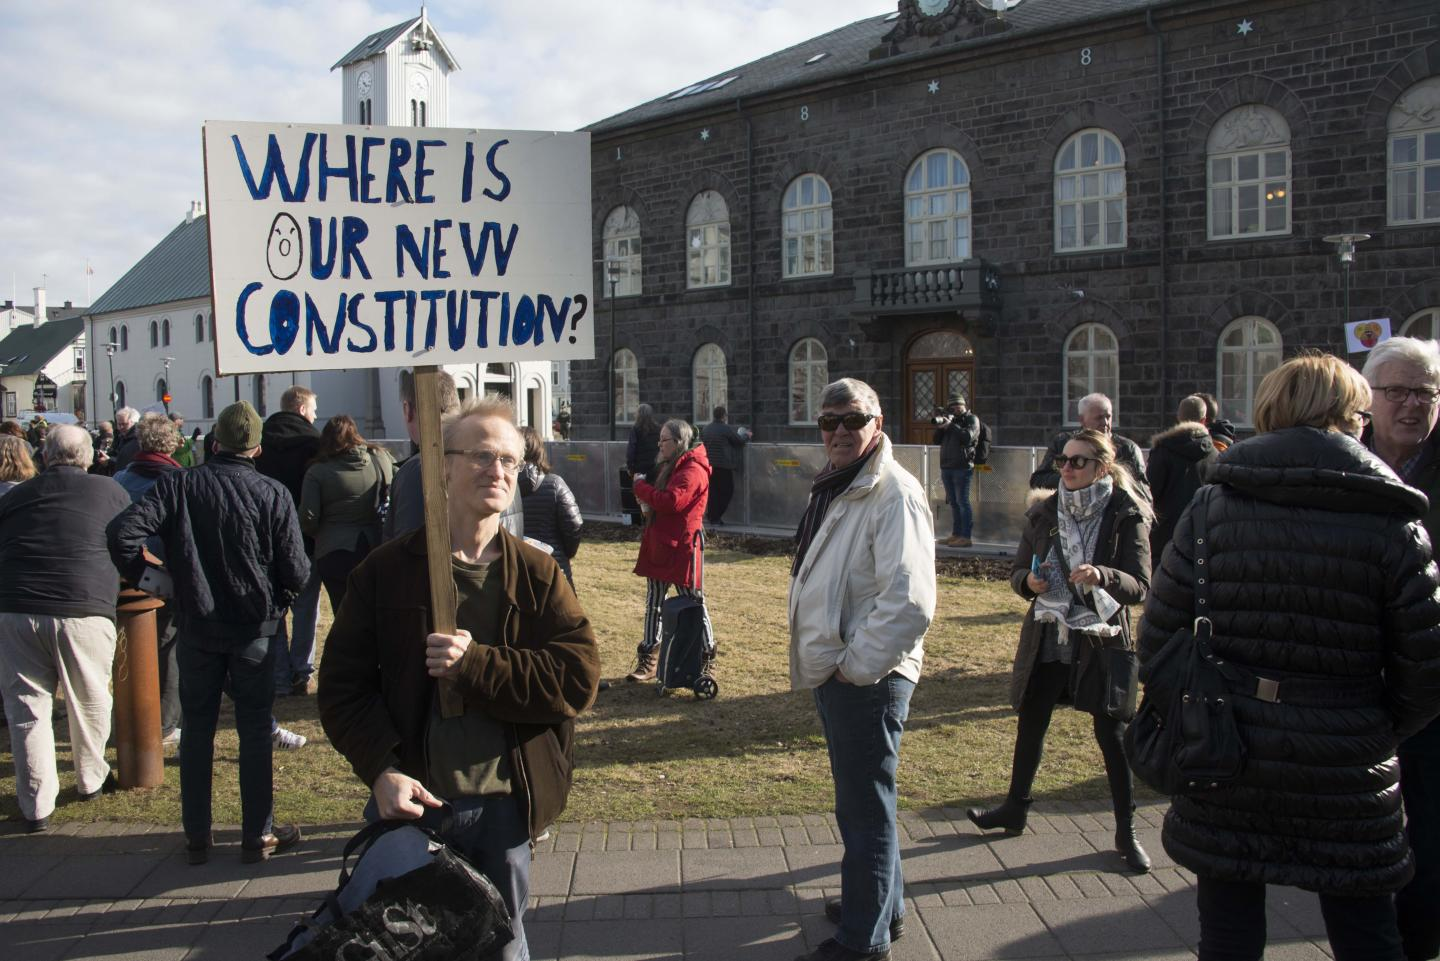 """One of the protester carrying a sign that reads, """"Where is our new constitution?"""", outside the parliament in Reykjavik, Iceland on 4 April, 2016."""